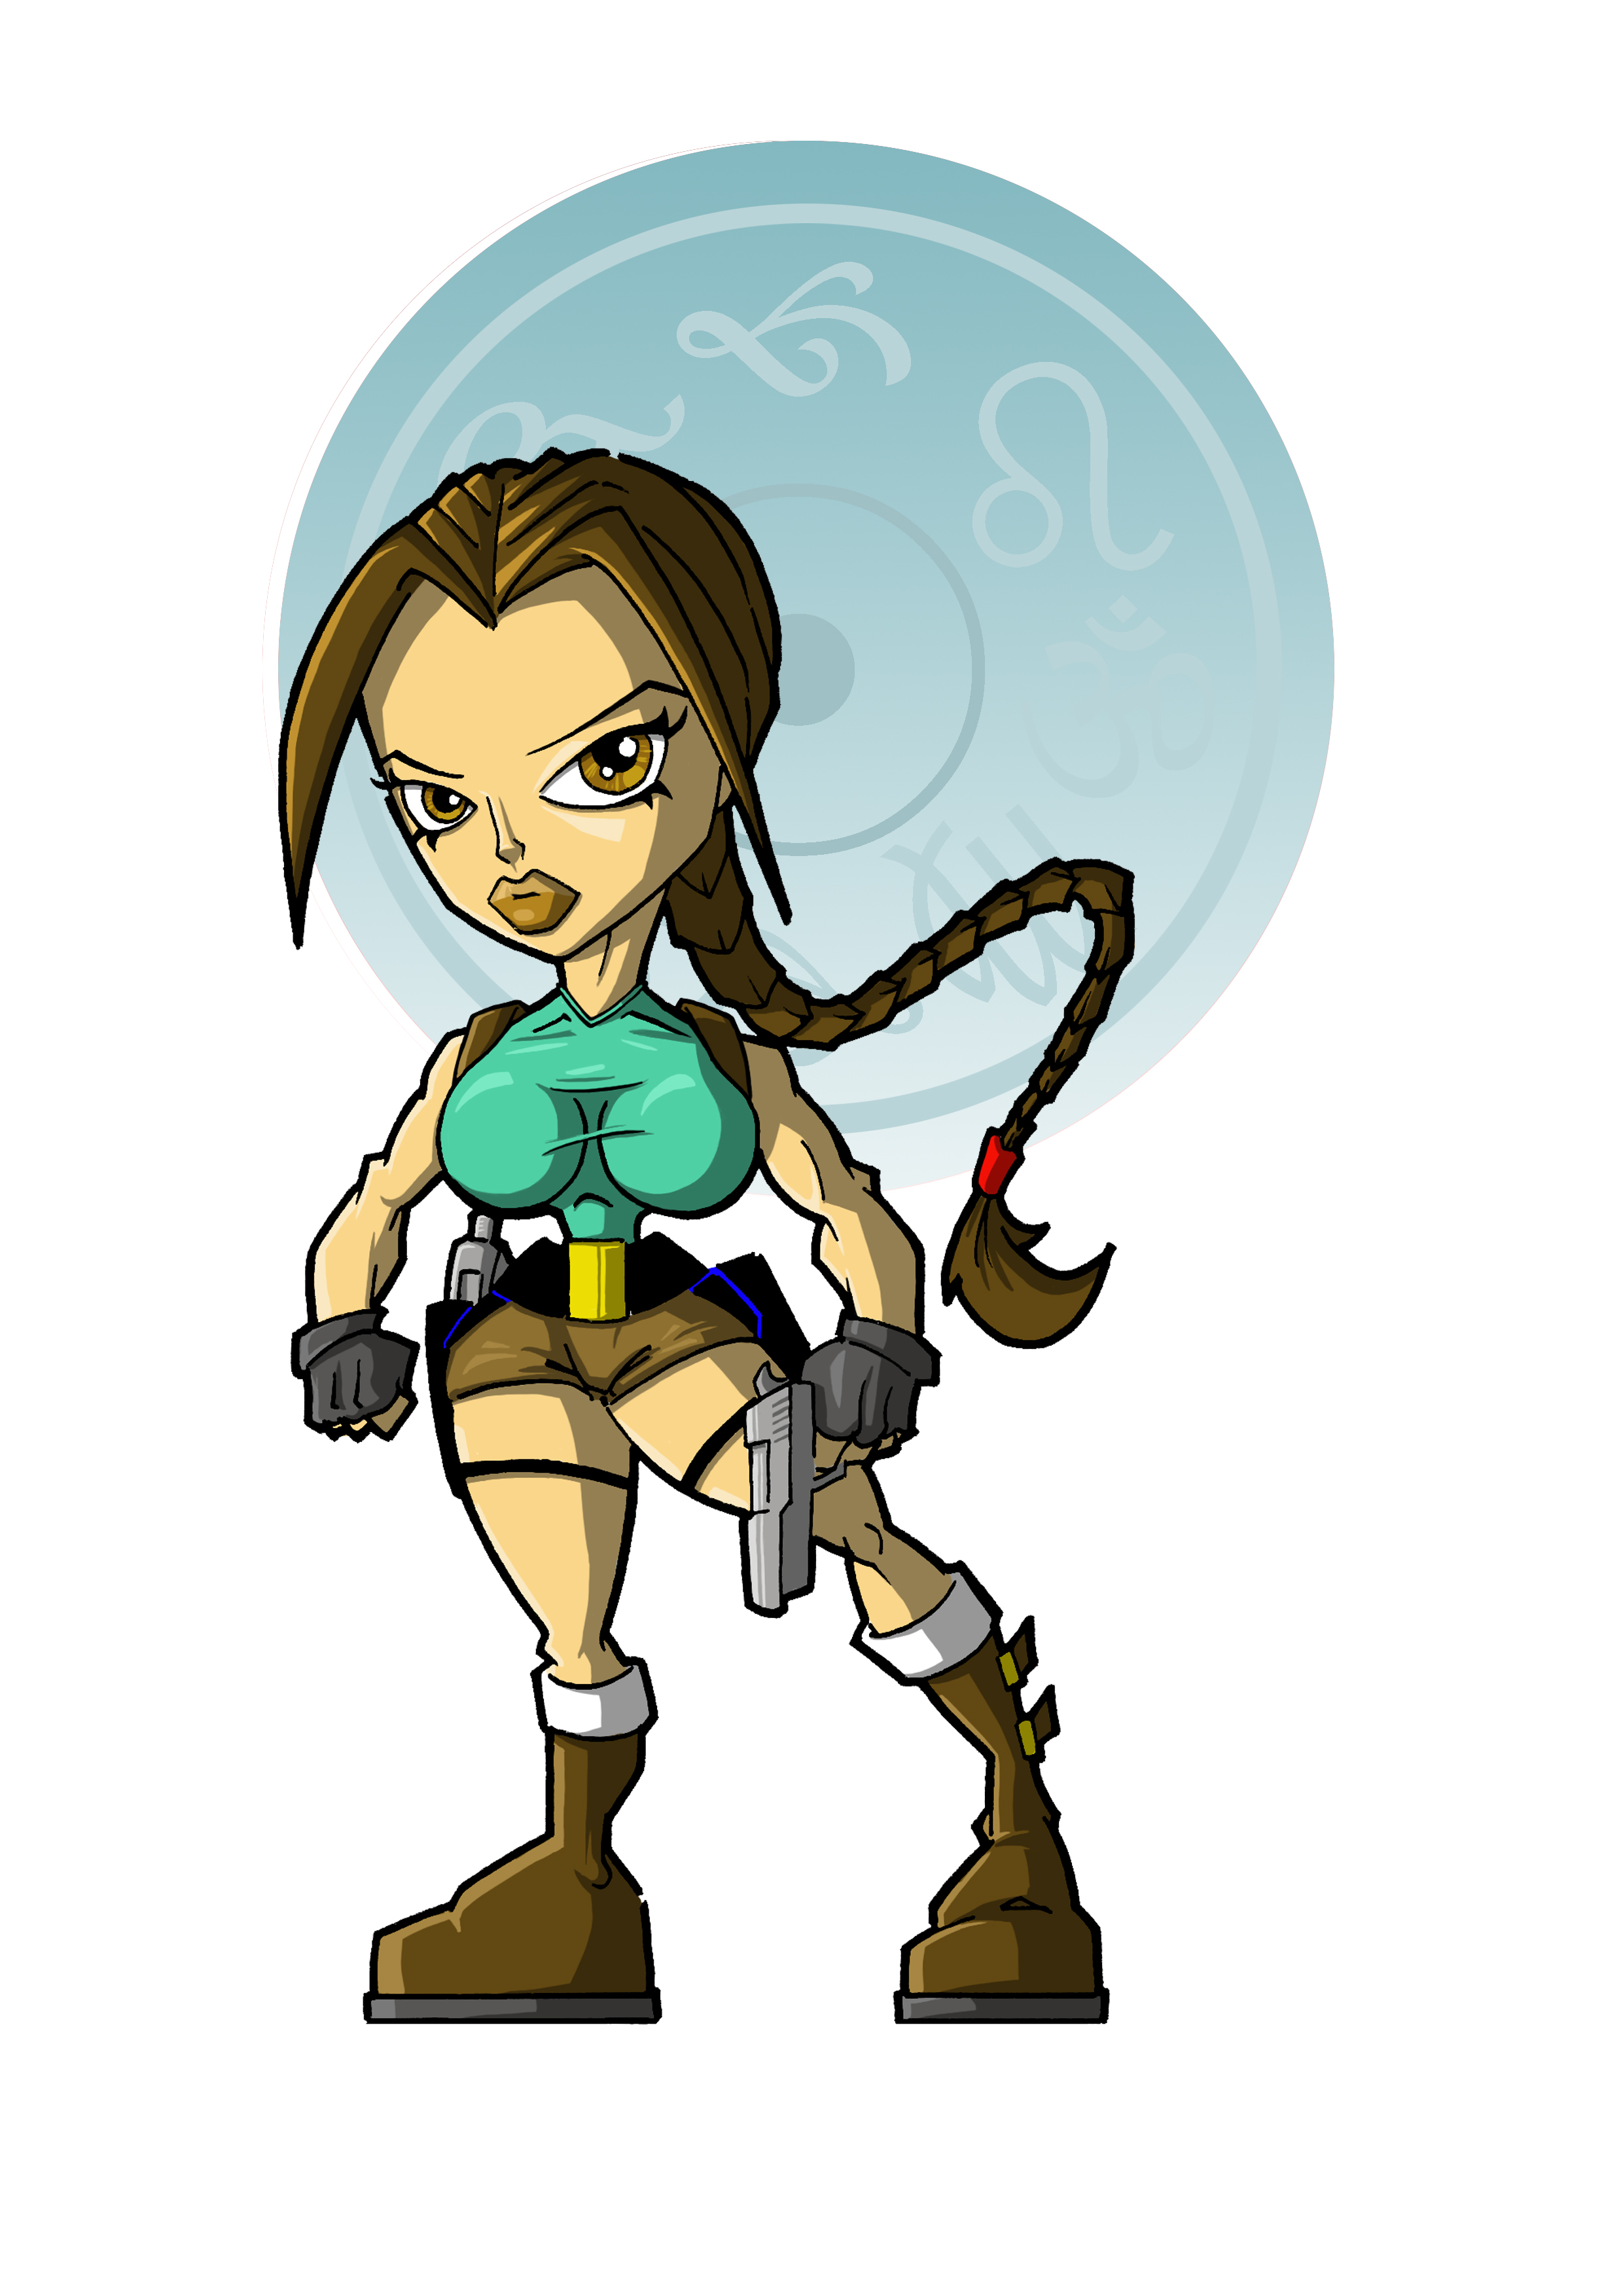 Lara Croft Cartoon.